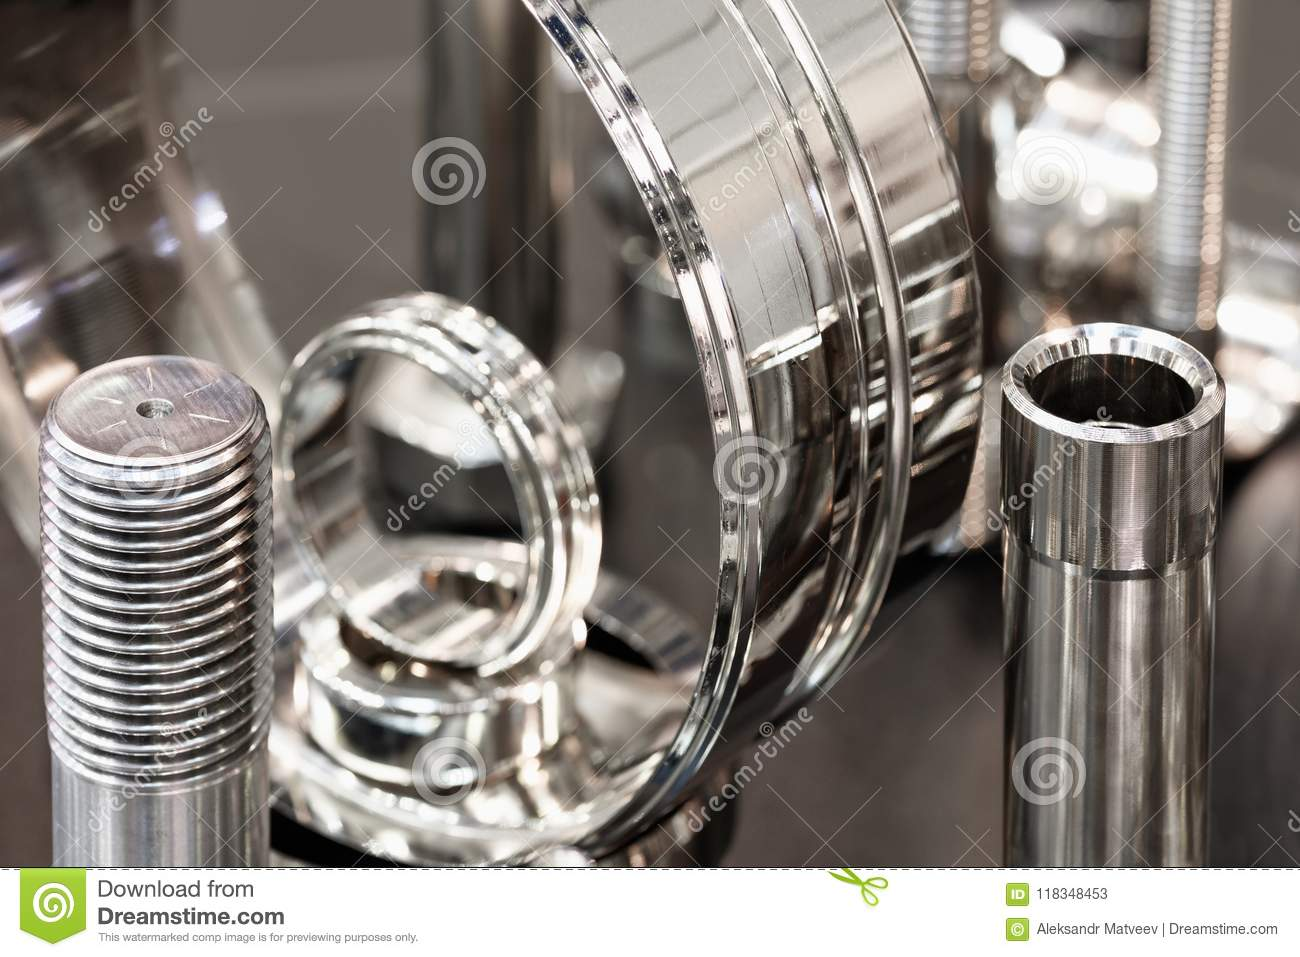 Many types of metal details industrial design background, industrial engineering concept.